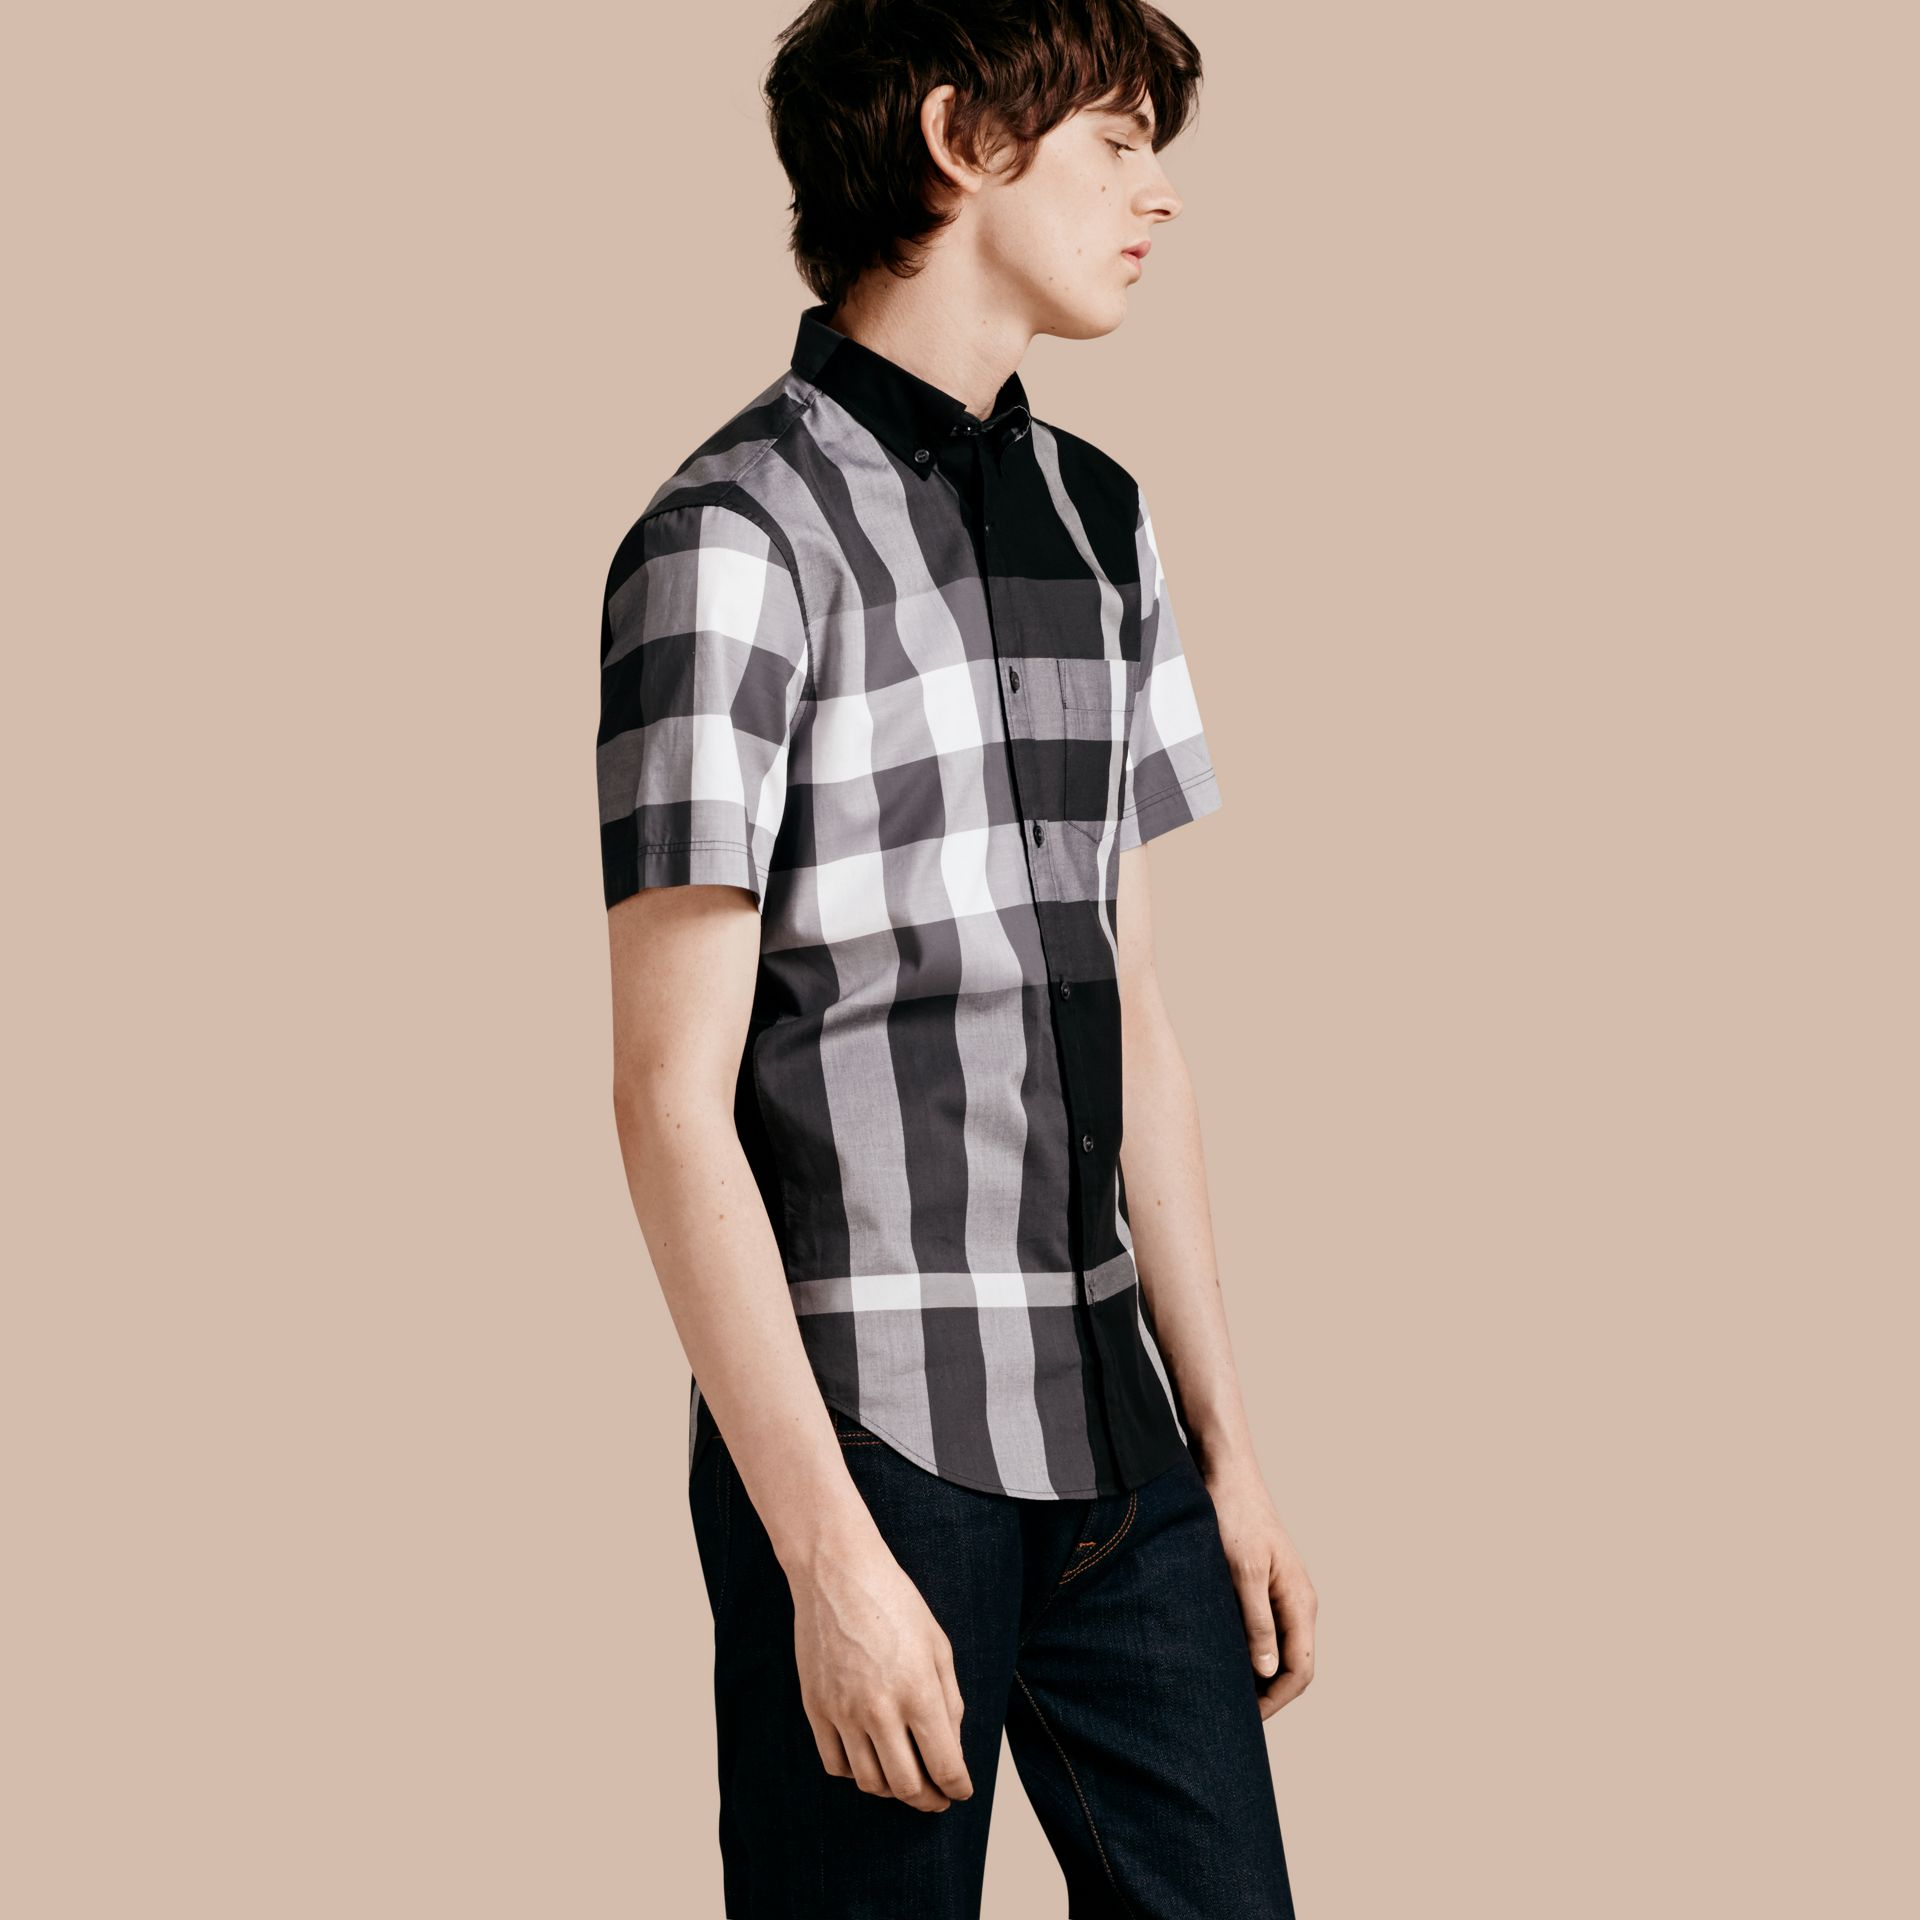 Black Short-sleeved Check Cotton Shirt Black - gallery image 1